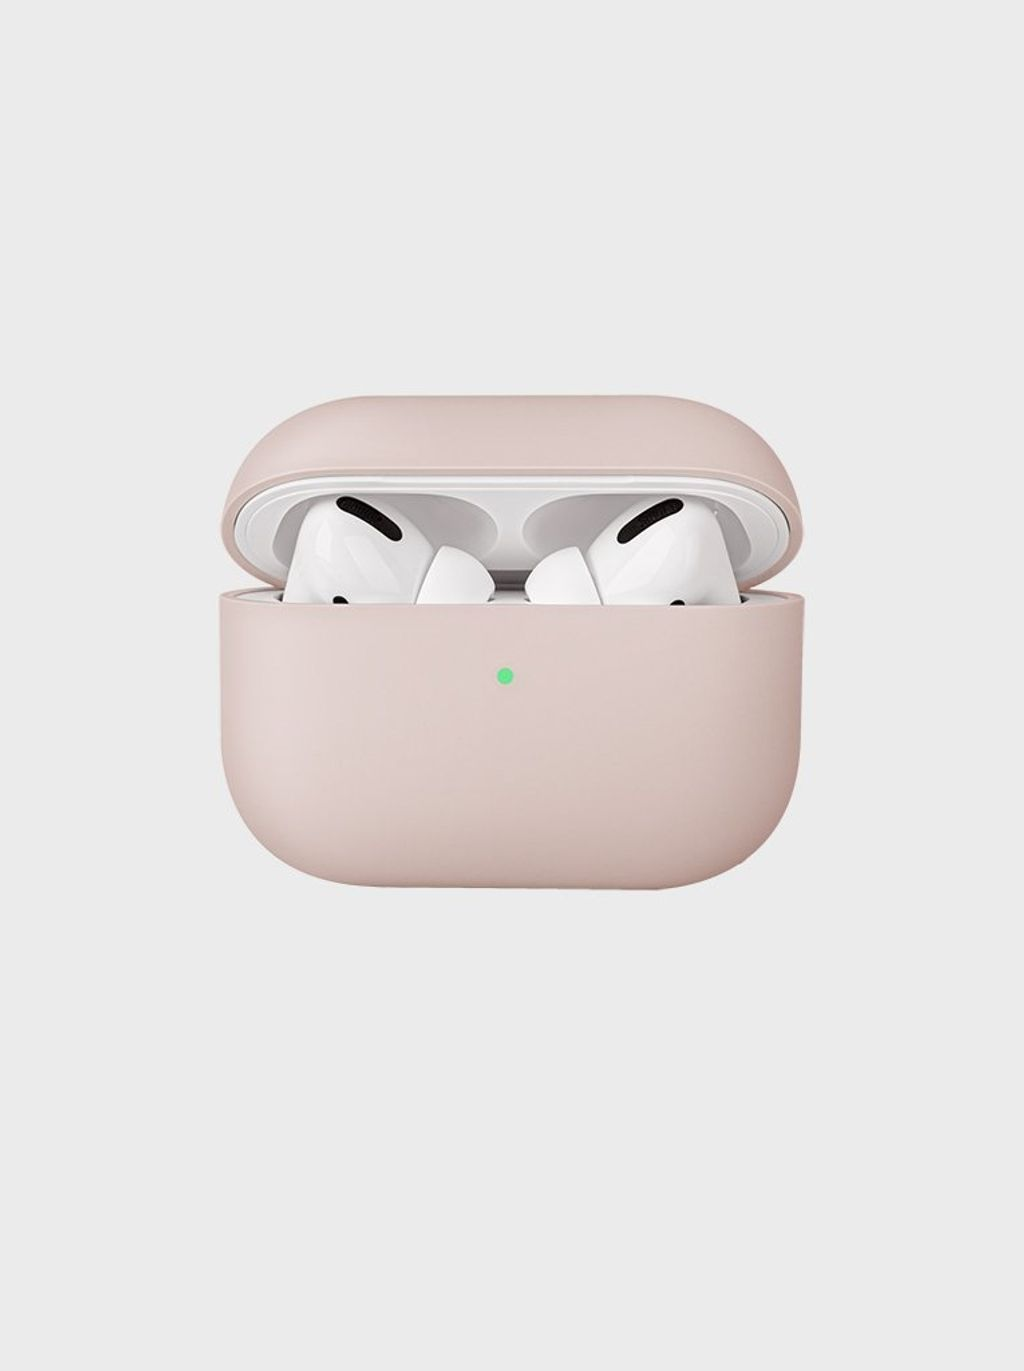 Lino_AirPods-Blush-01_Low_res_SG_1024x1024